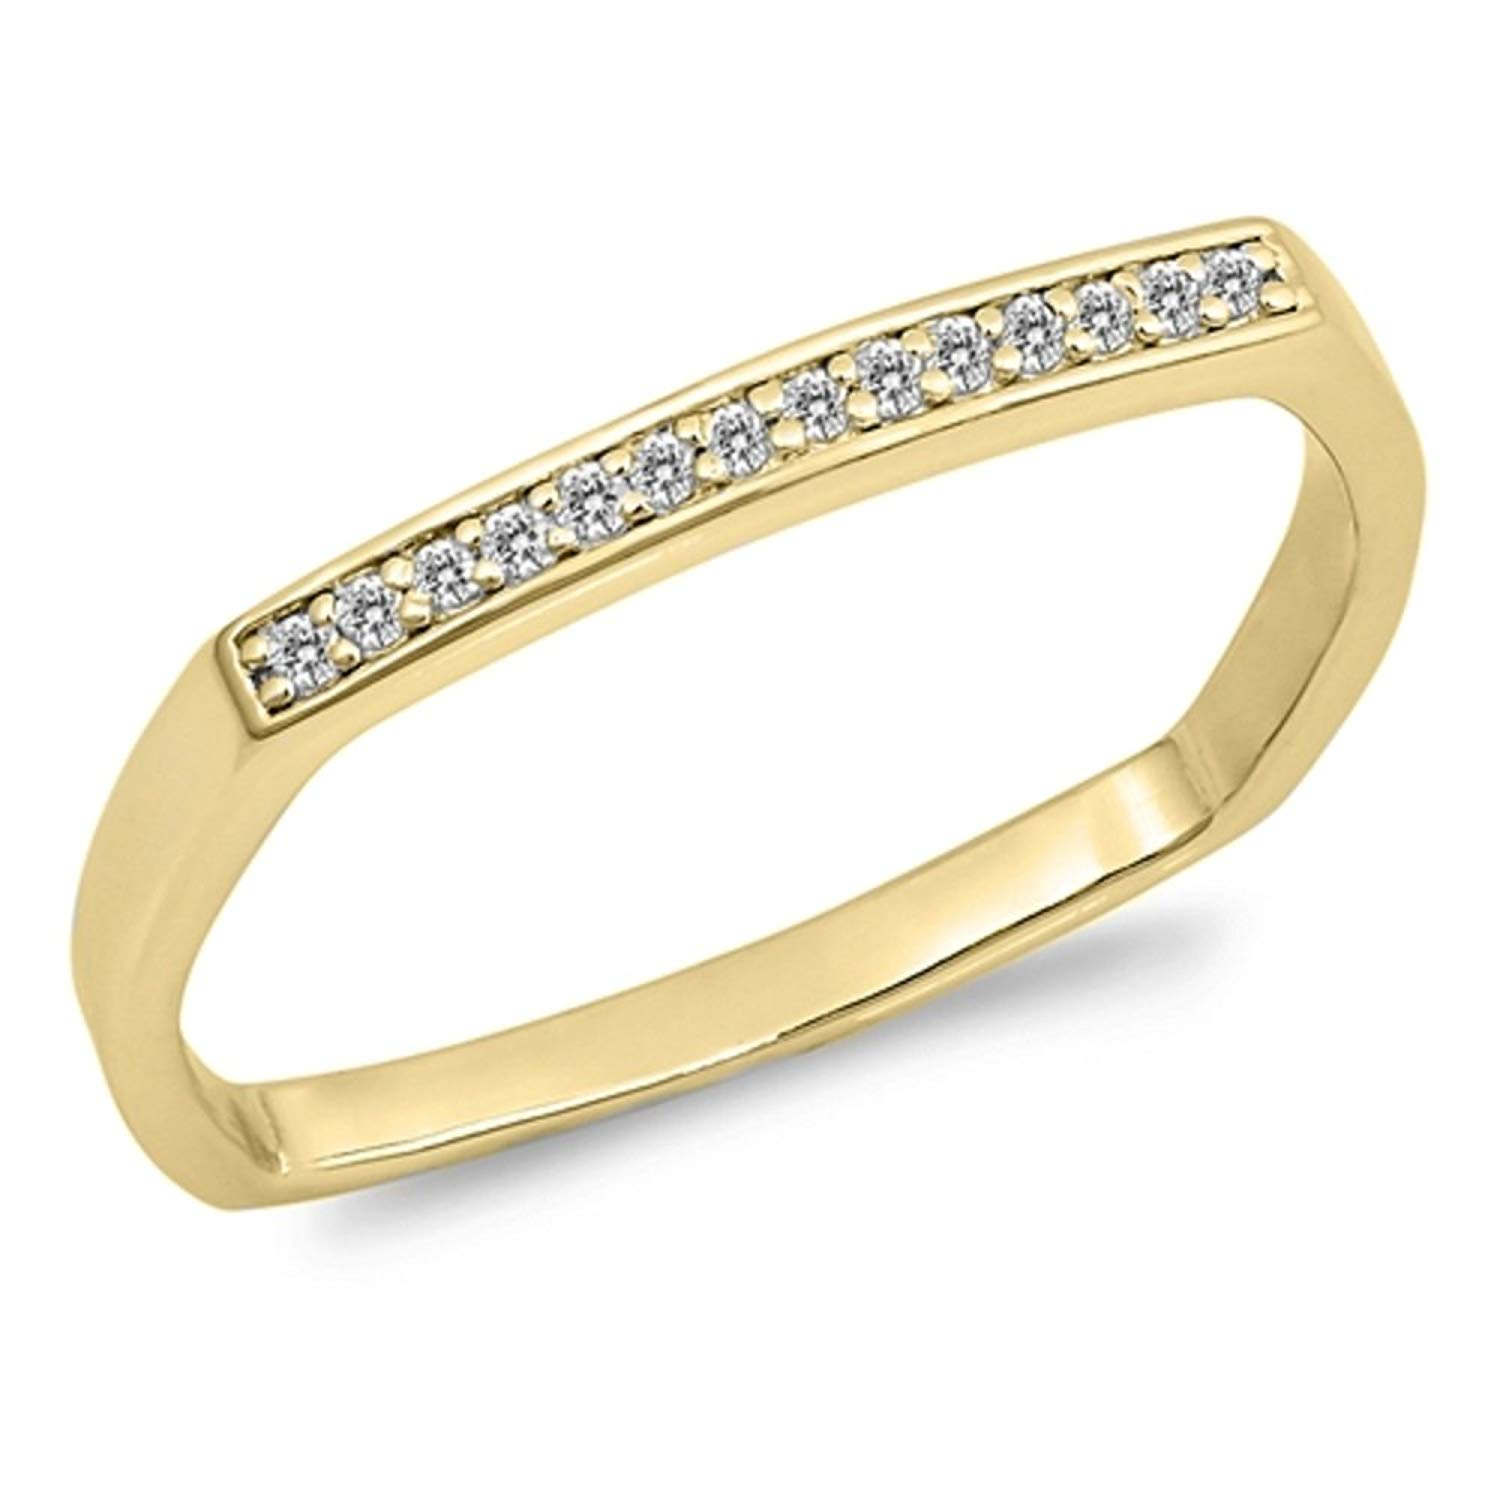 Clear Cubic Zirconia Single Row Stackable Ring Yellow Gold-Tone Plated 925 Sterling Silver